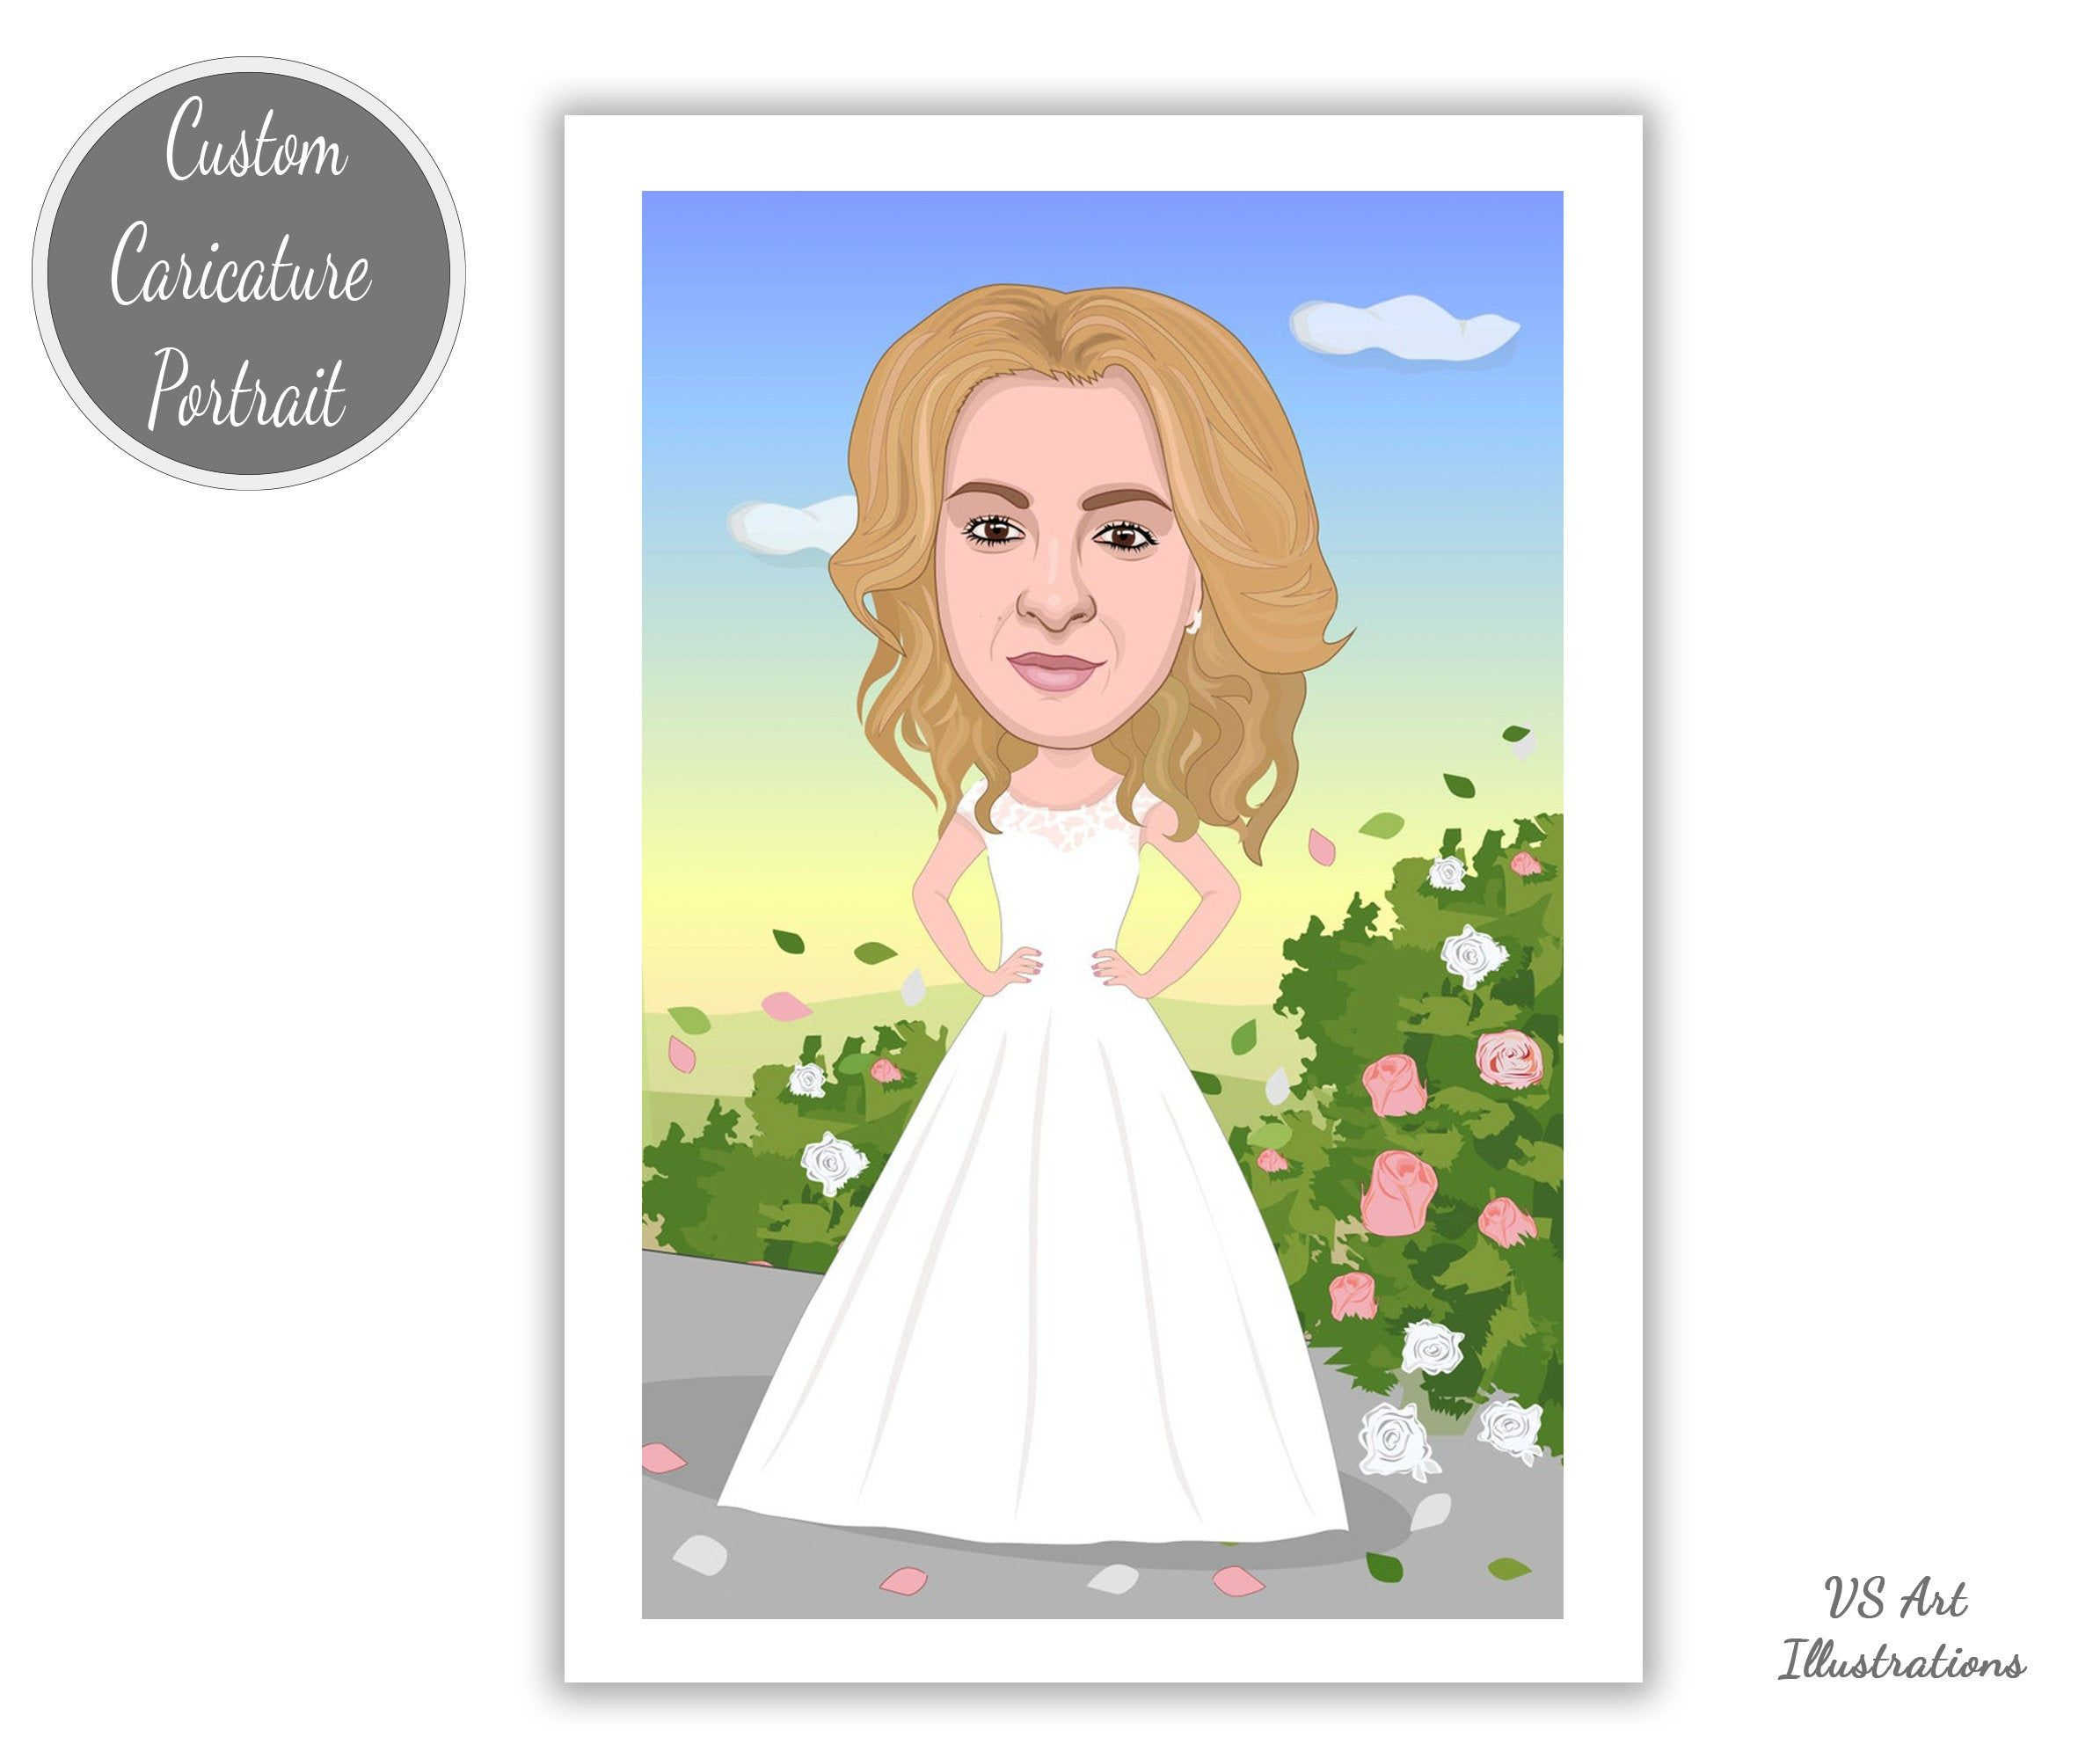 Custom Bridal Portrait Gift For Bride To Be Cartoon Wedding